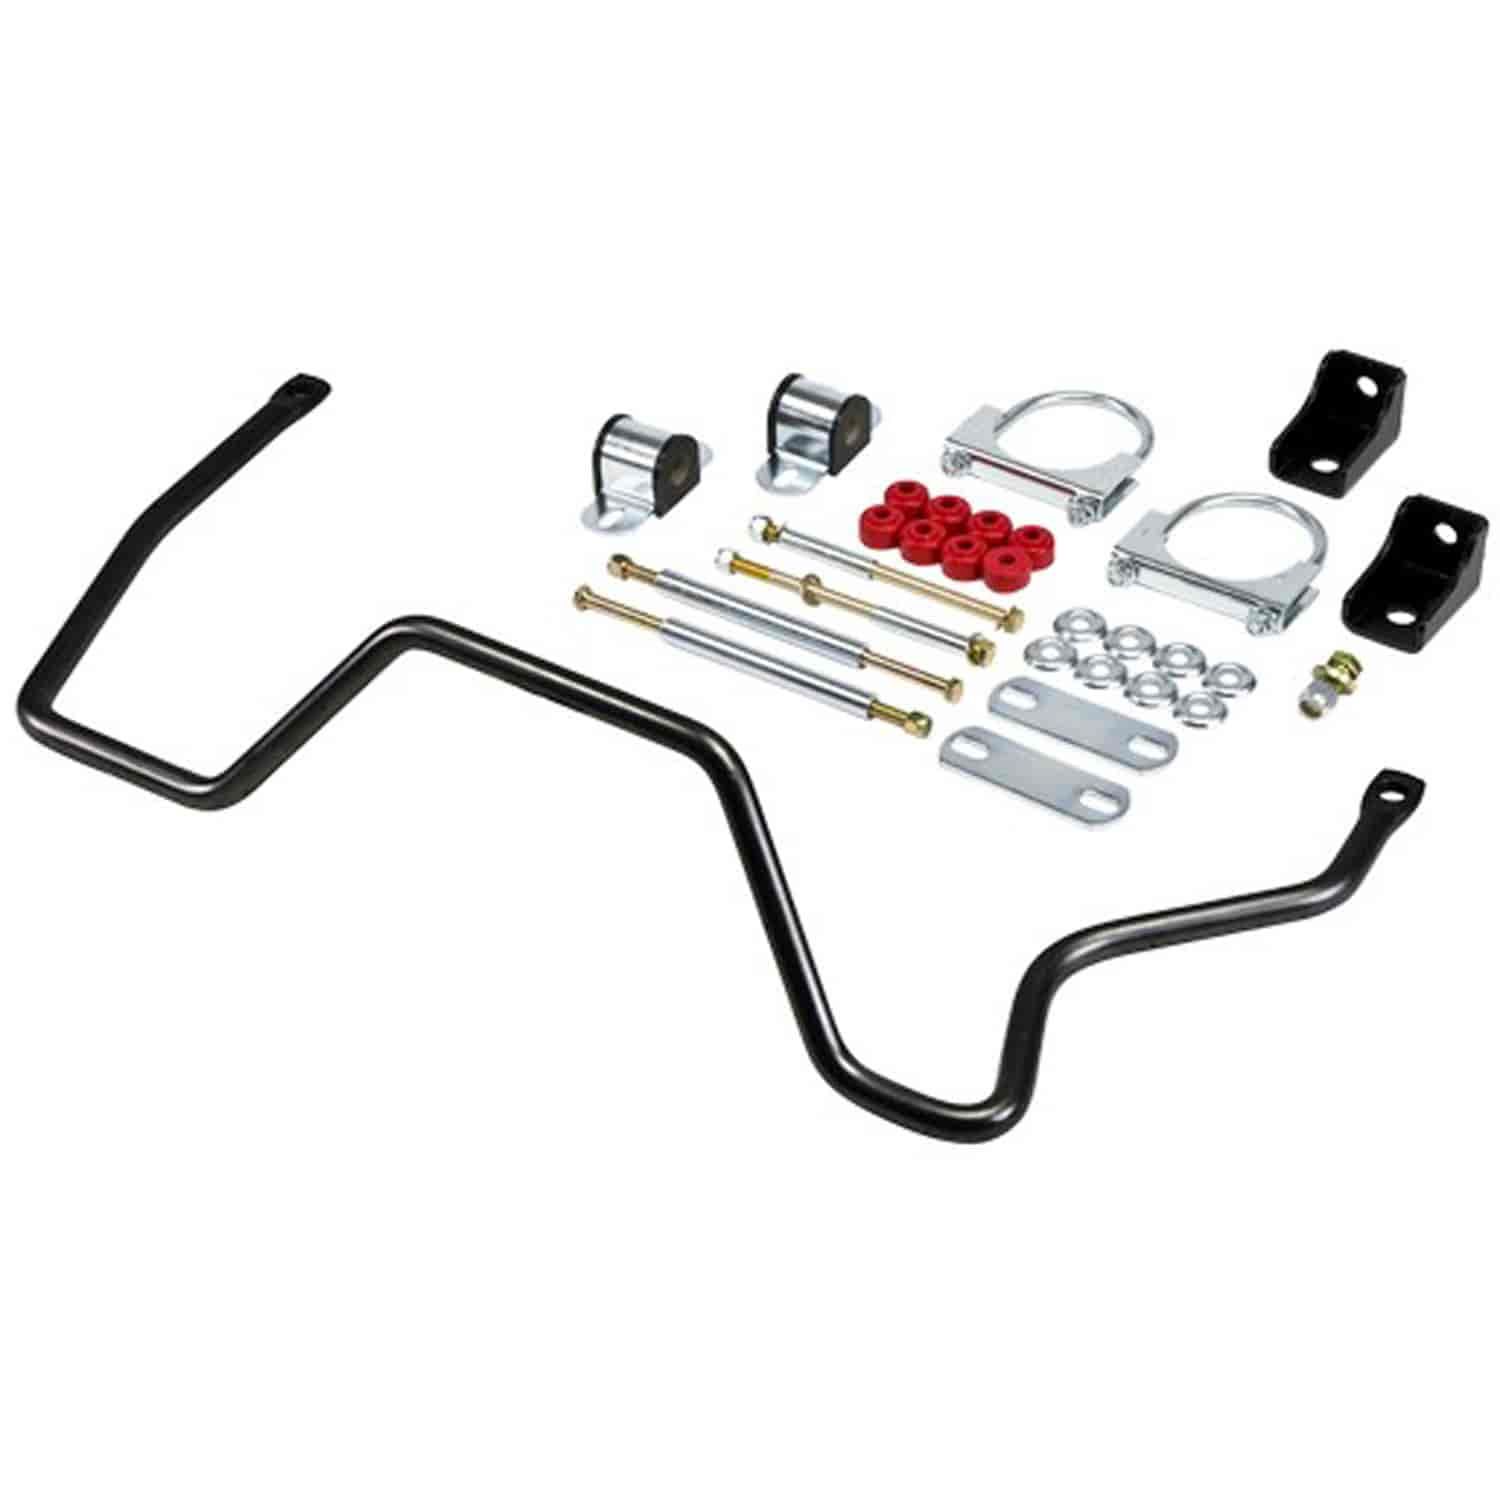 Belltech Rear Anti Sway Bar